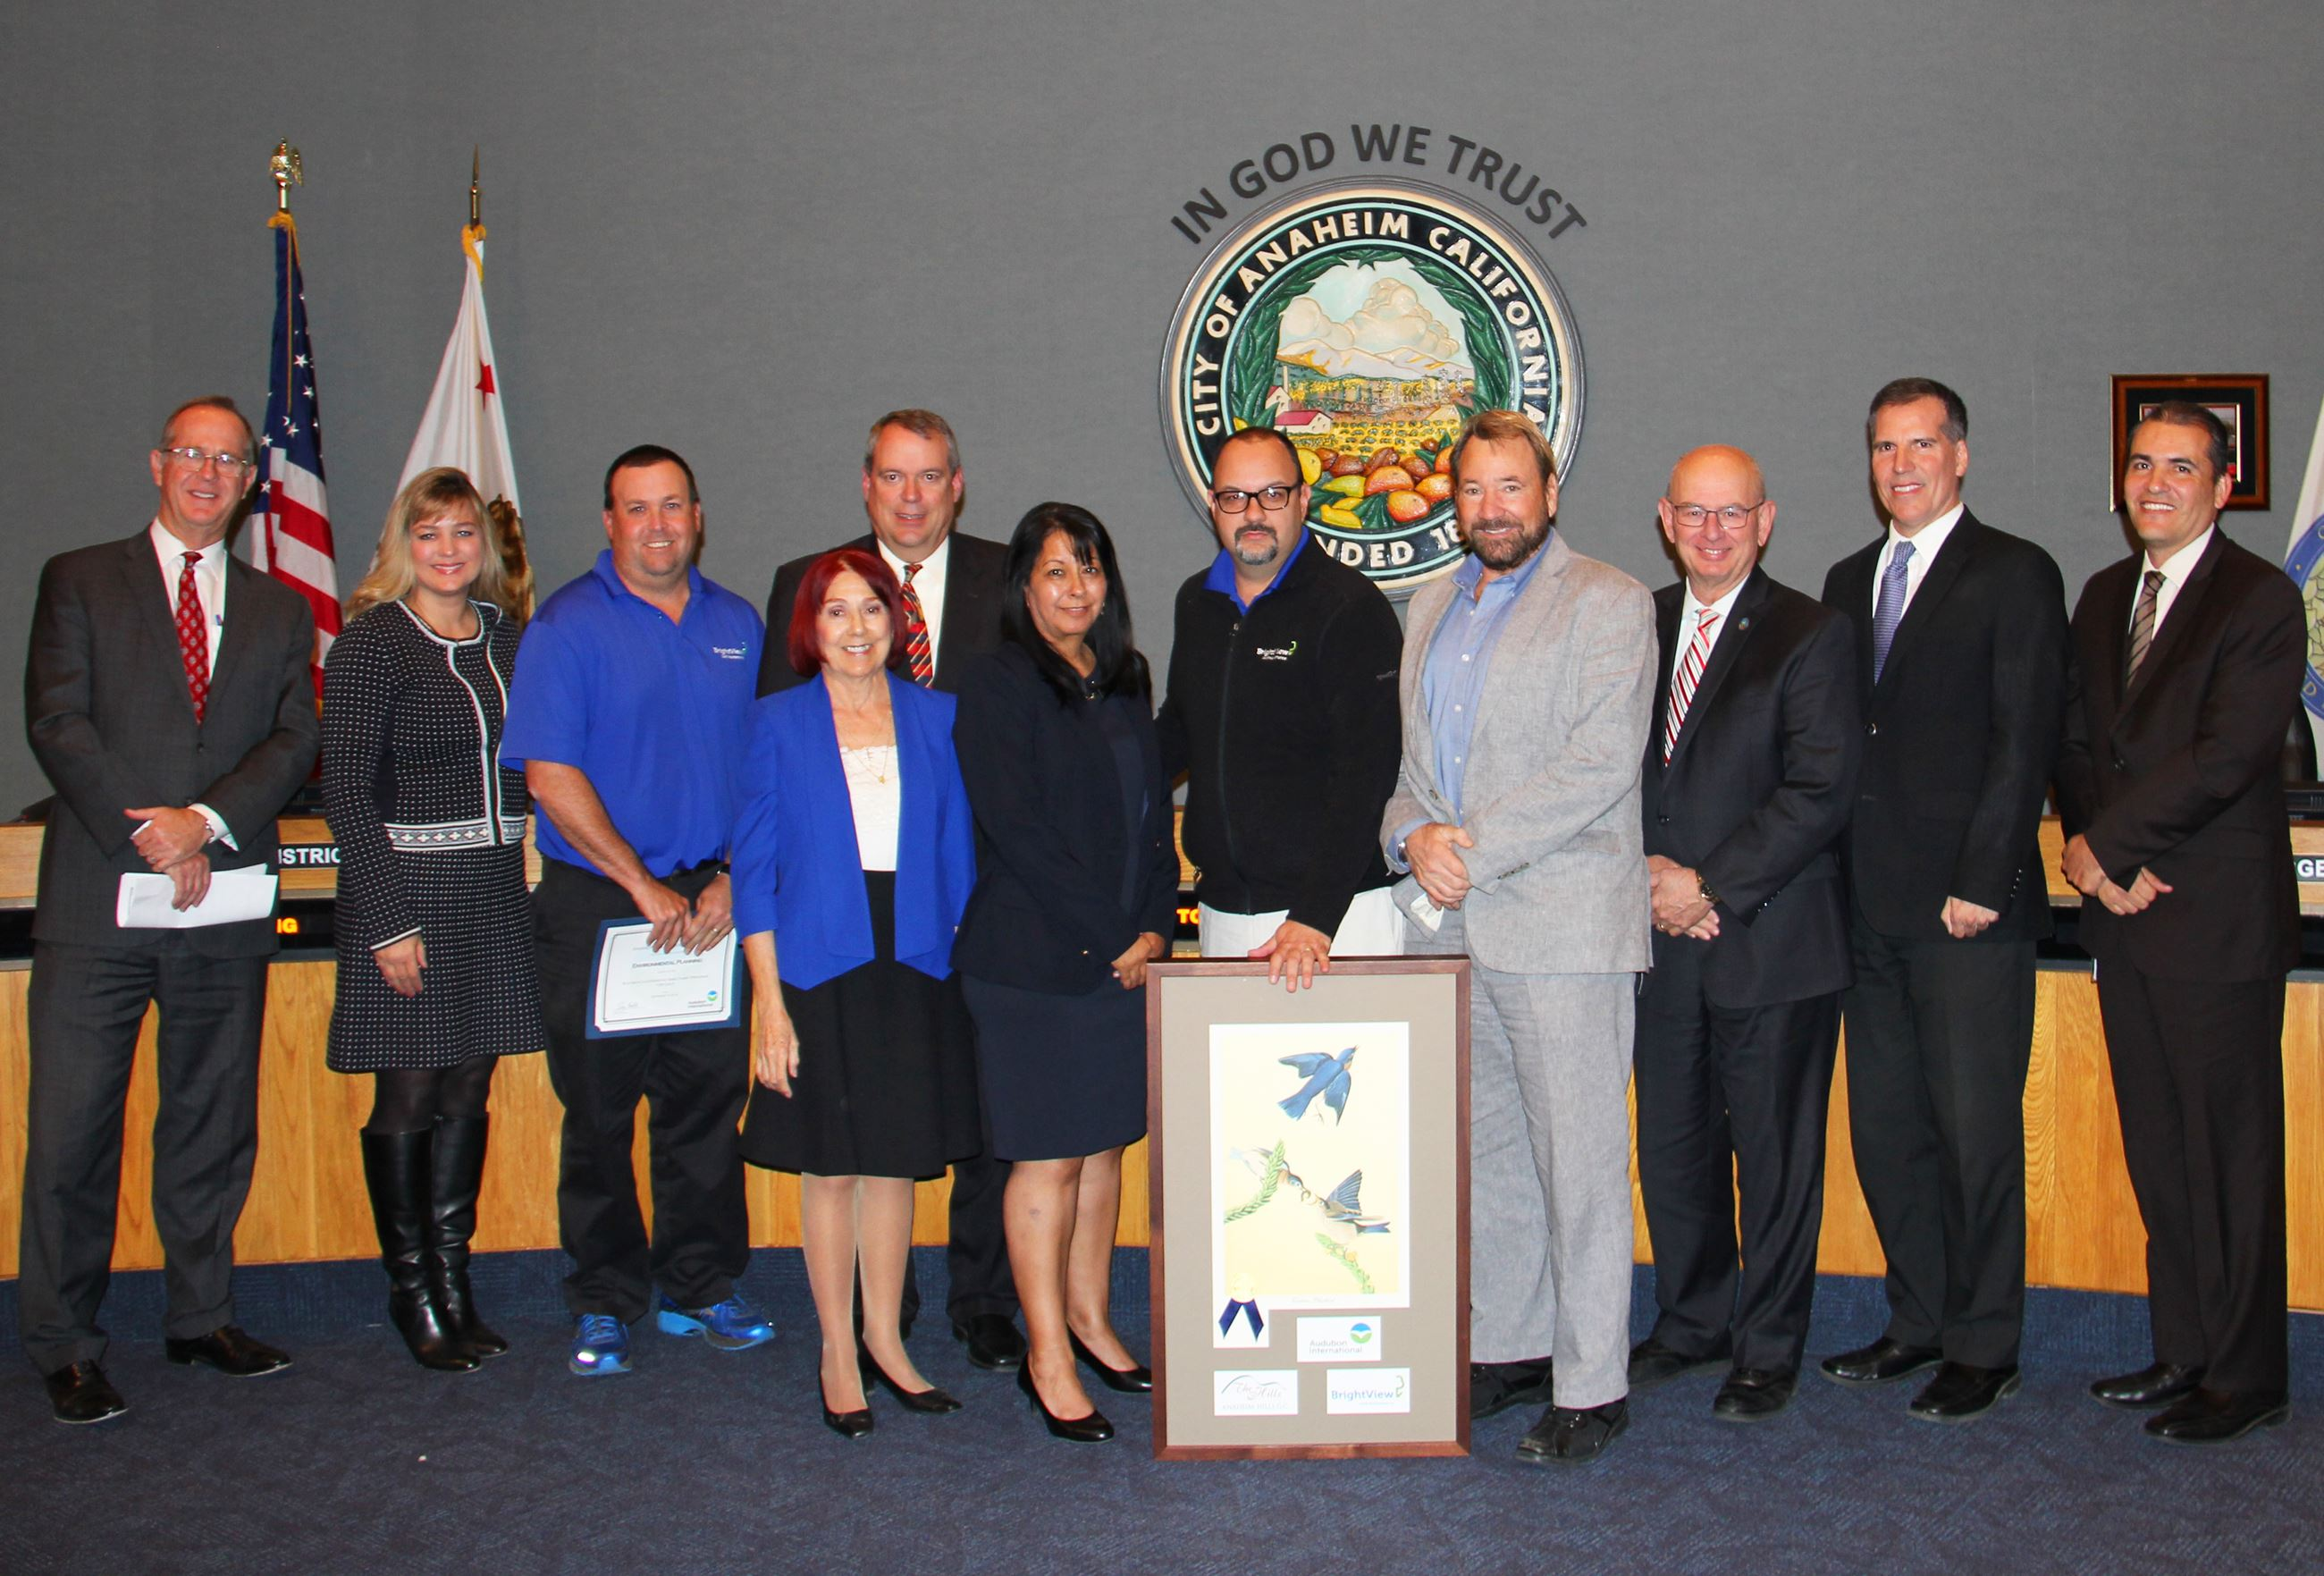 Anaheim Hills Golf Course designation as a Certified Audubon Cooperative Sanctuary